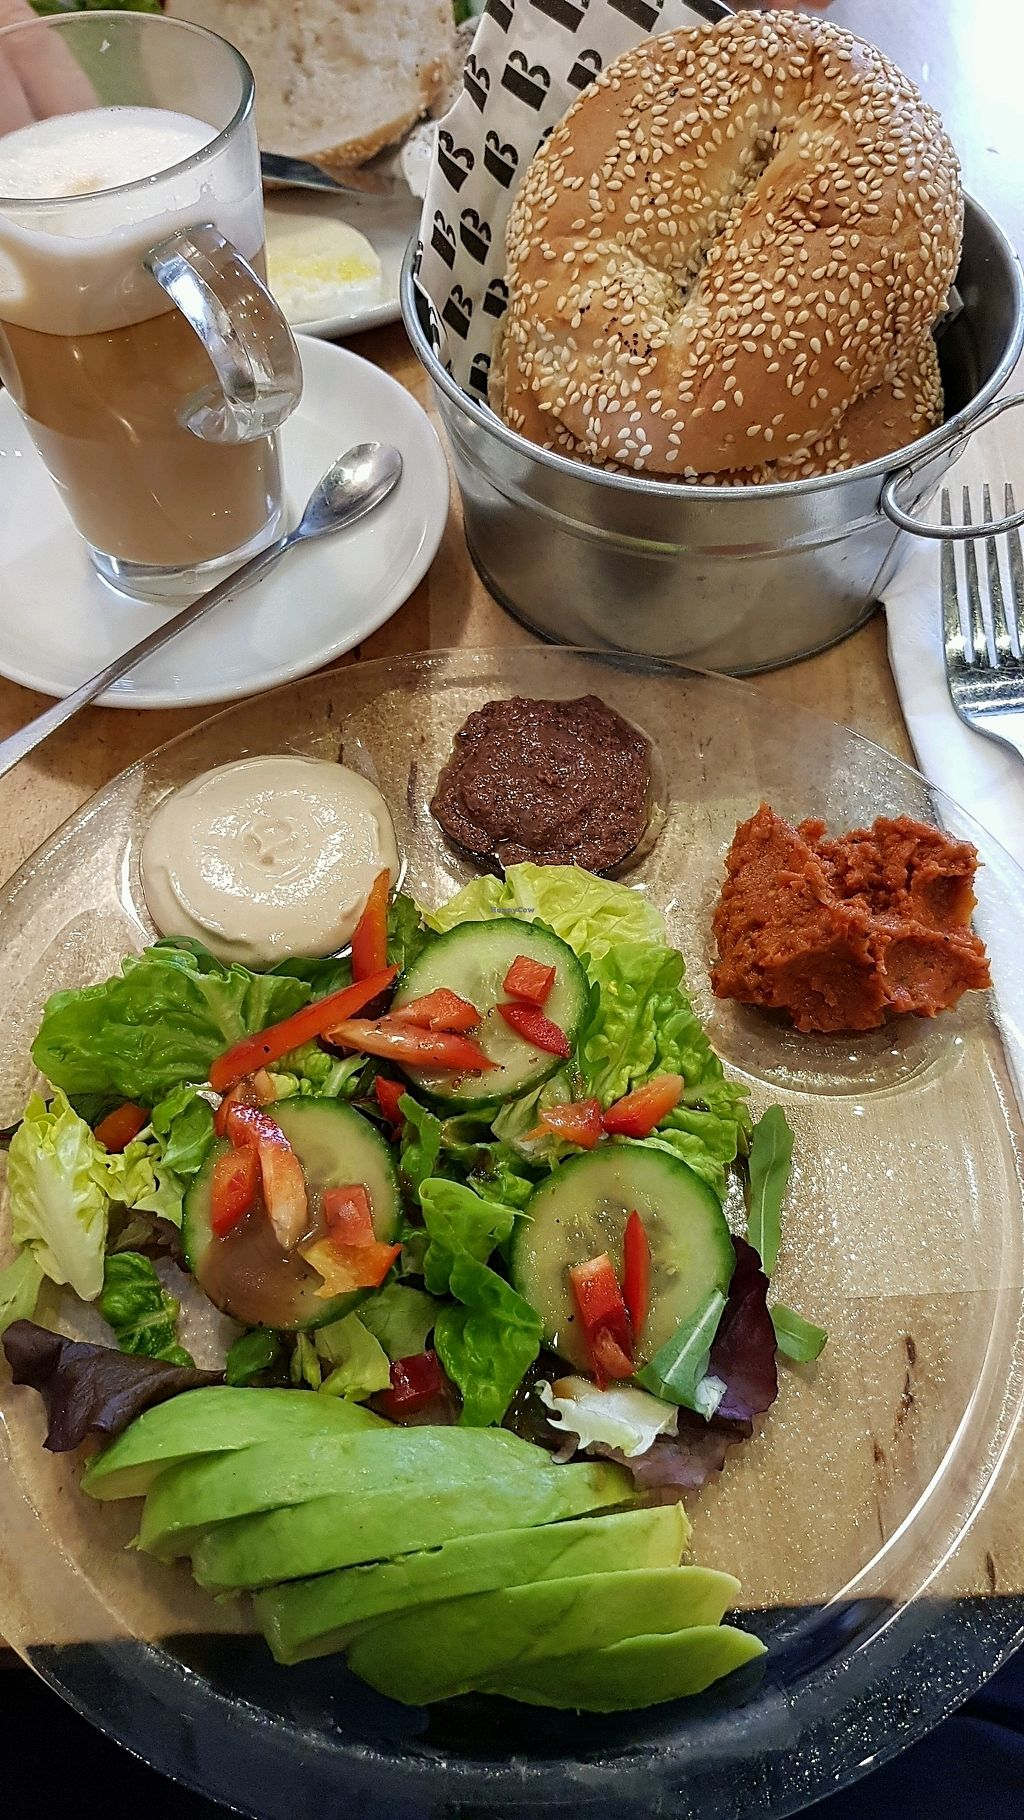 """Photo of B Bagel Bakery Bar  by <a href=""""/members/profile/jollypig"""">jollypig</a> <br/>Vegan breakfast, bagel & coffee <br/> March 4, 2018  - <a href='/contact/abuse/image/110632/366576'>Report</a>"""